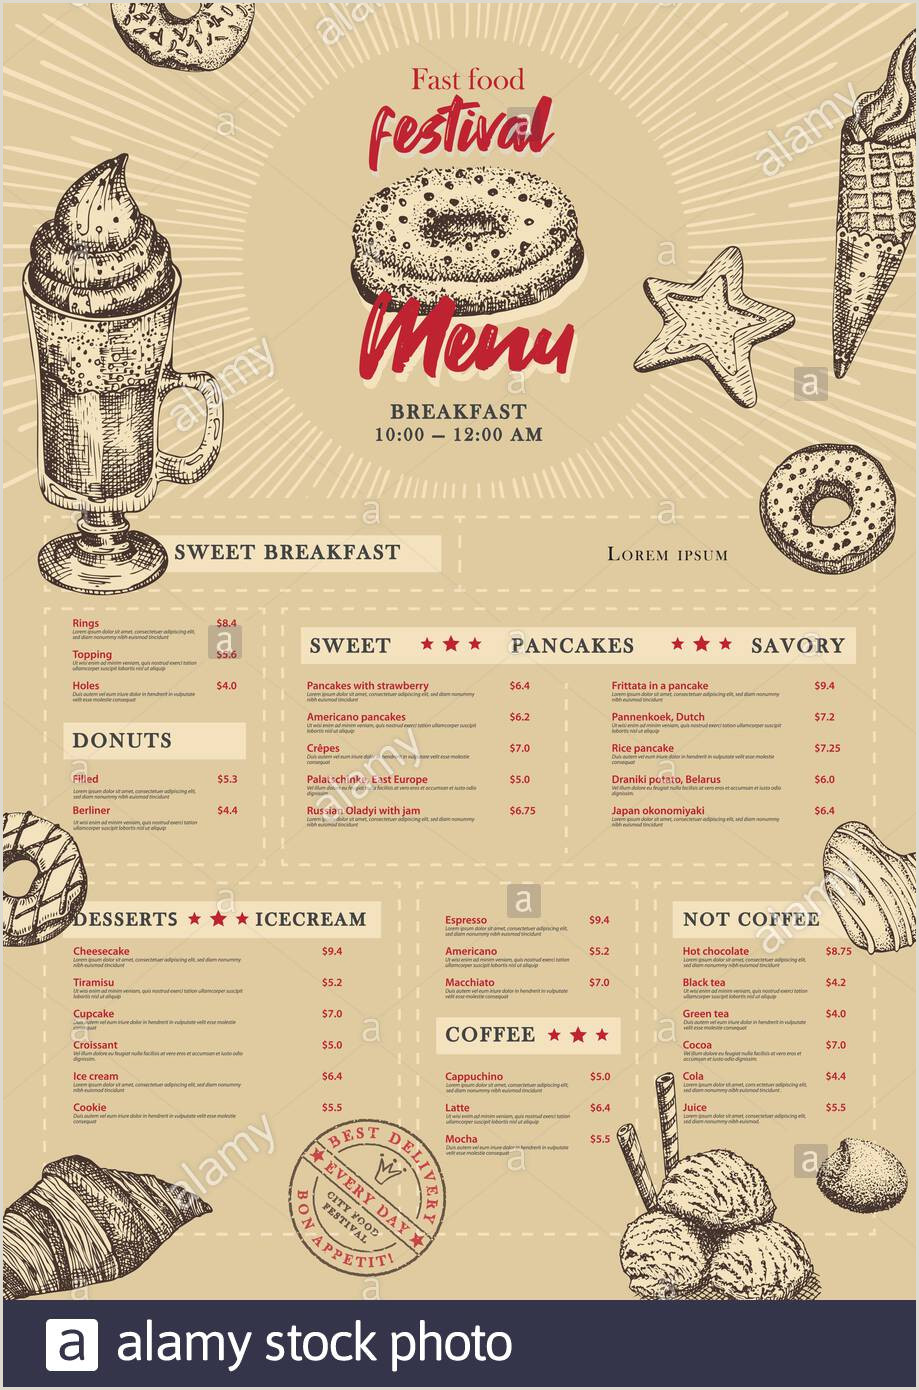 Contact Cards Template City Food Festival Menu Design Template In Retro Style On